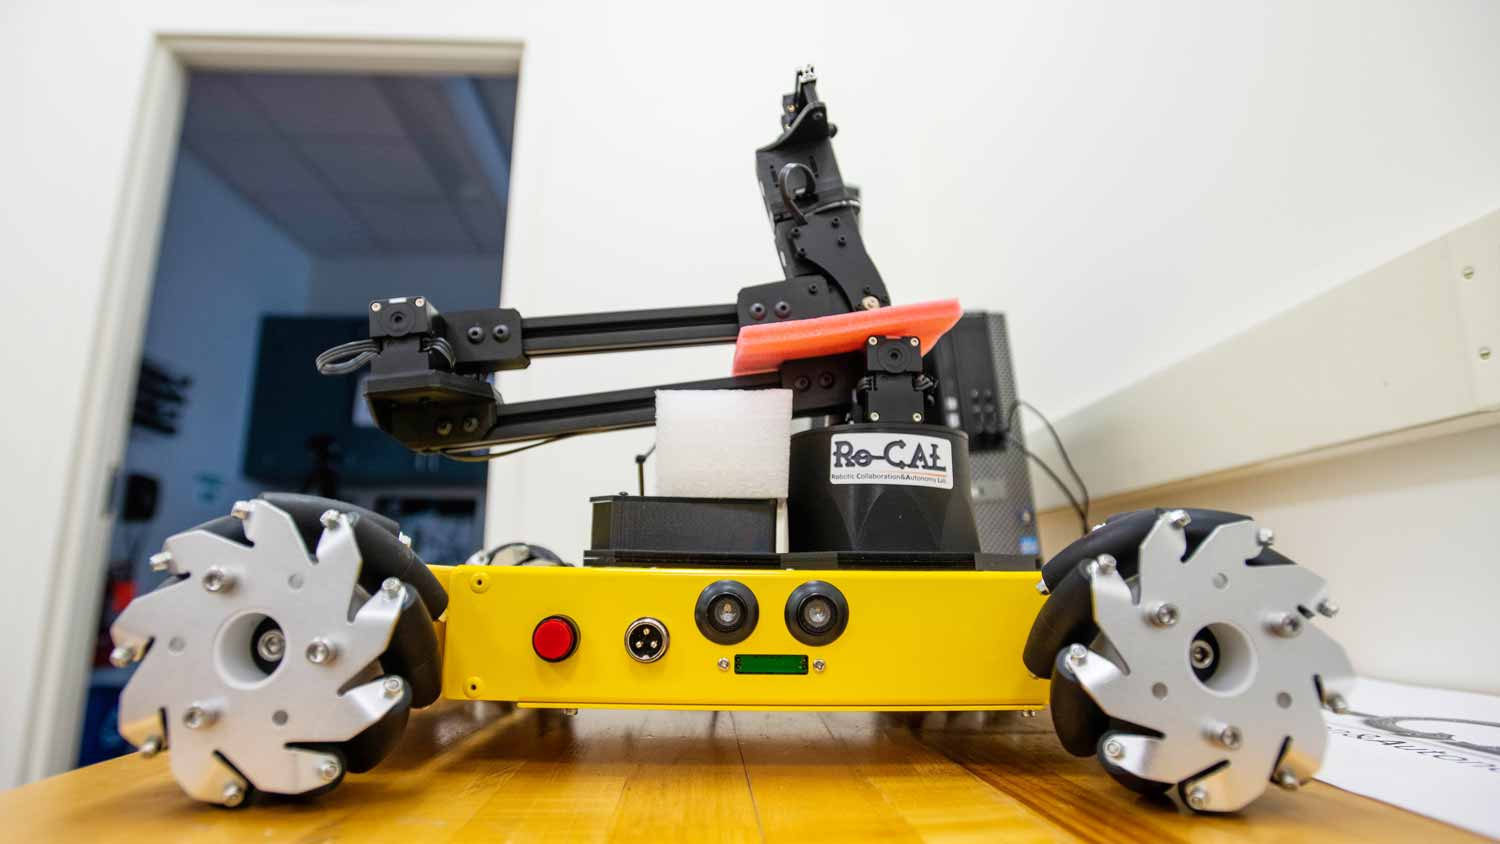 A rover like robot with an actuating arm and rubber tires